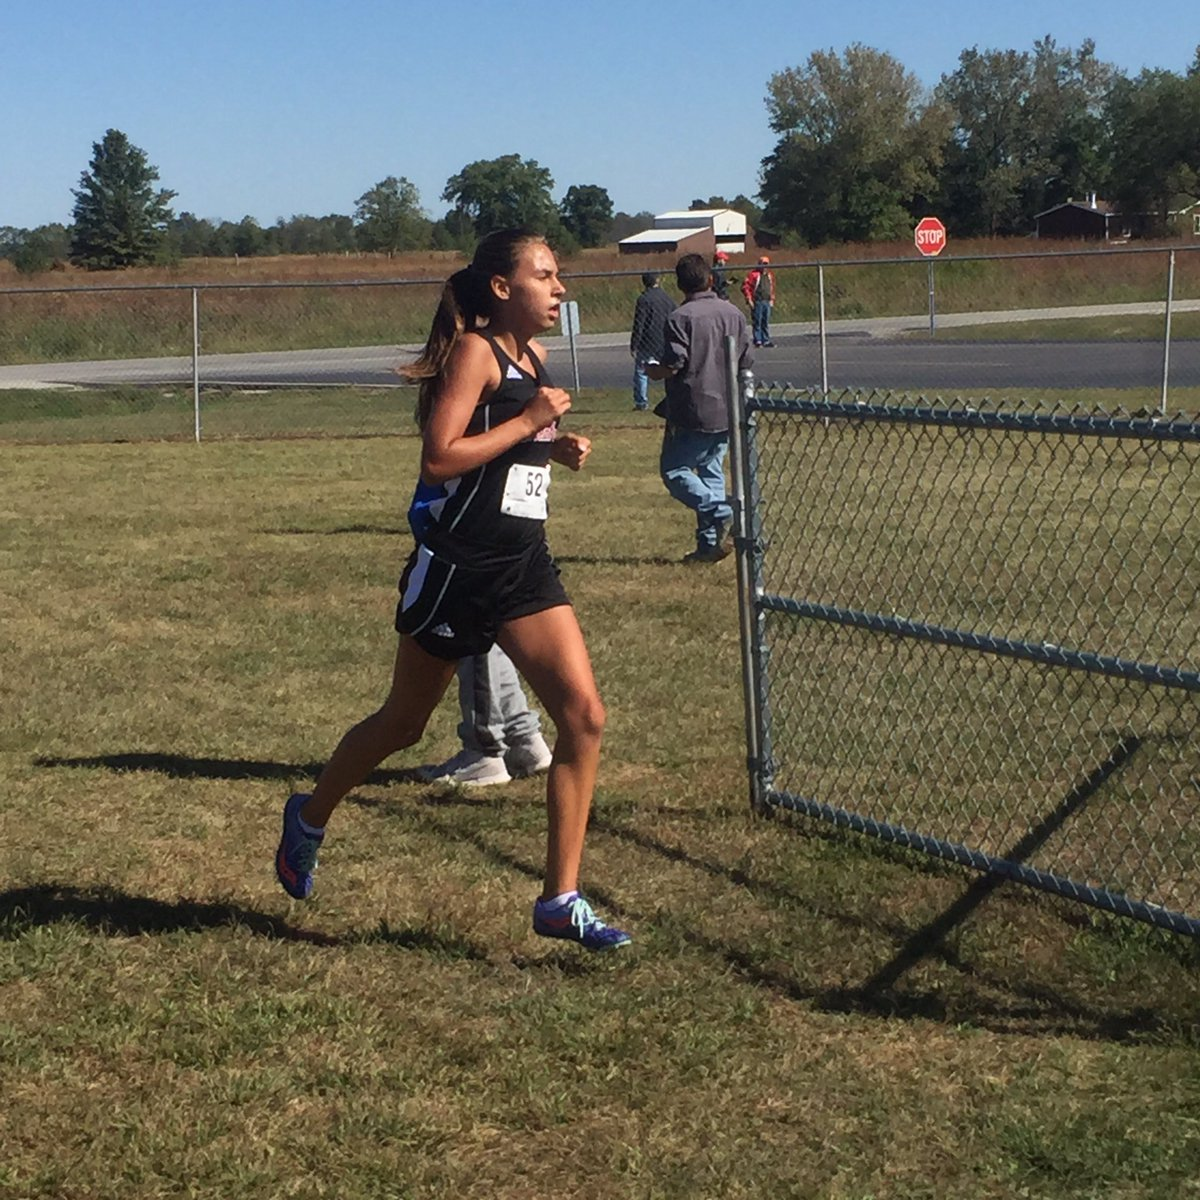 West Central's Wuethrich advances to IHSAA Cross-Country Regional